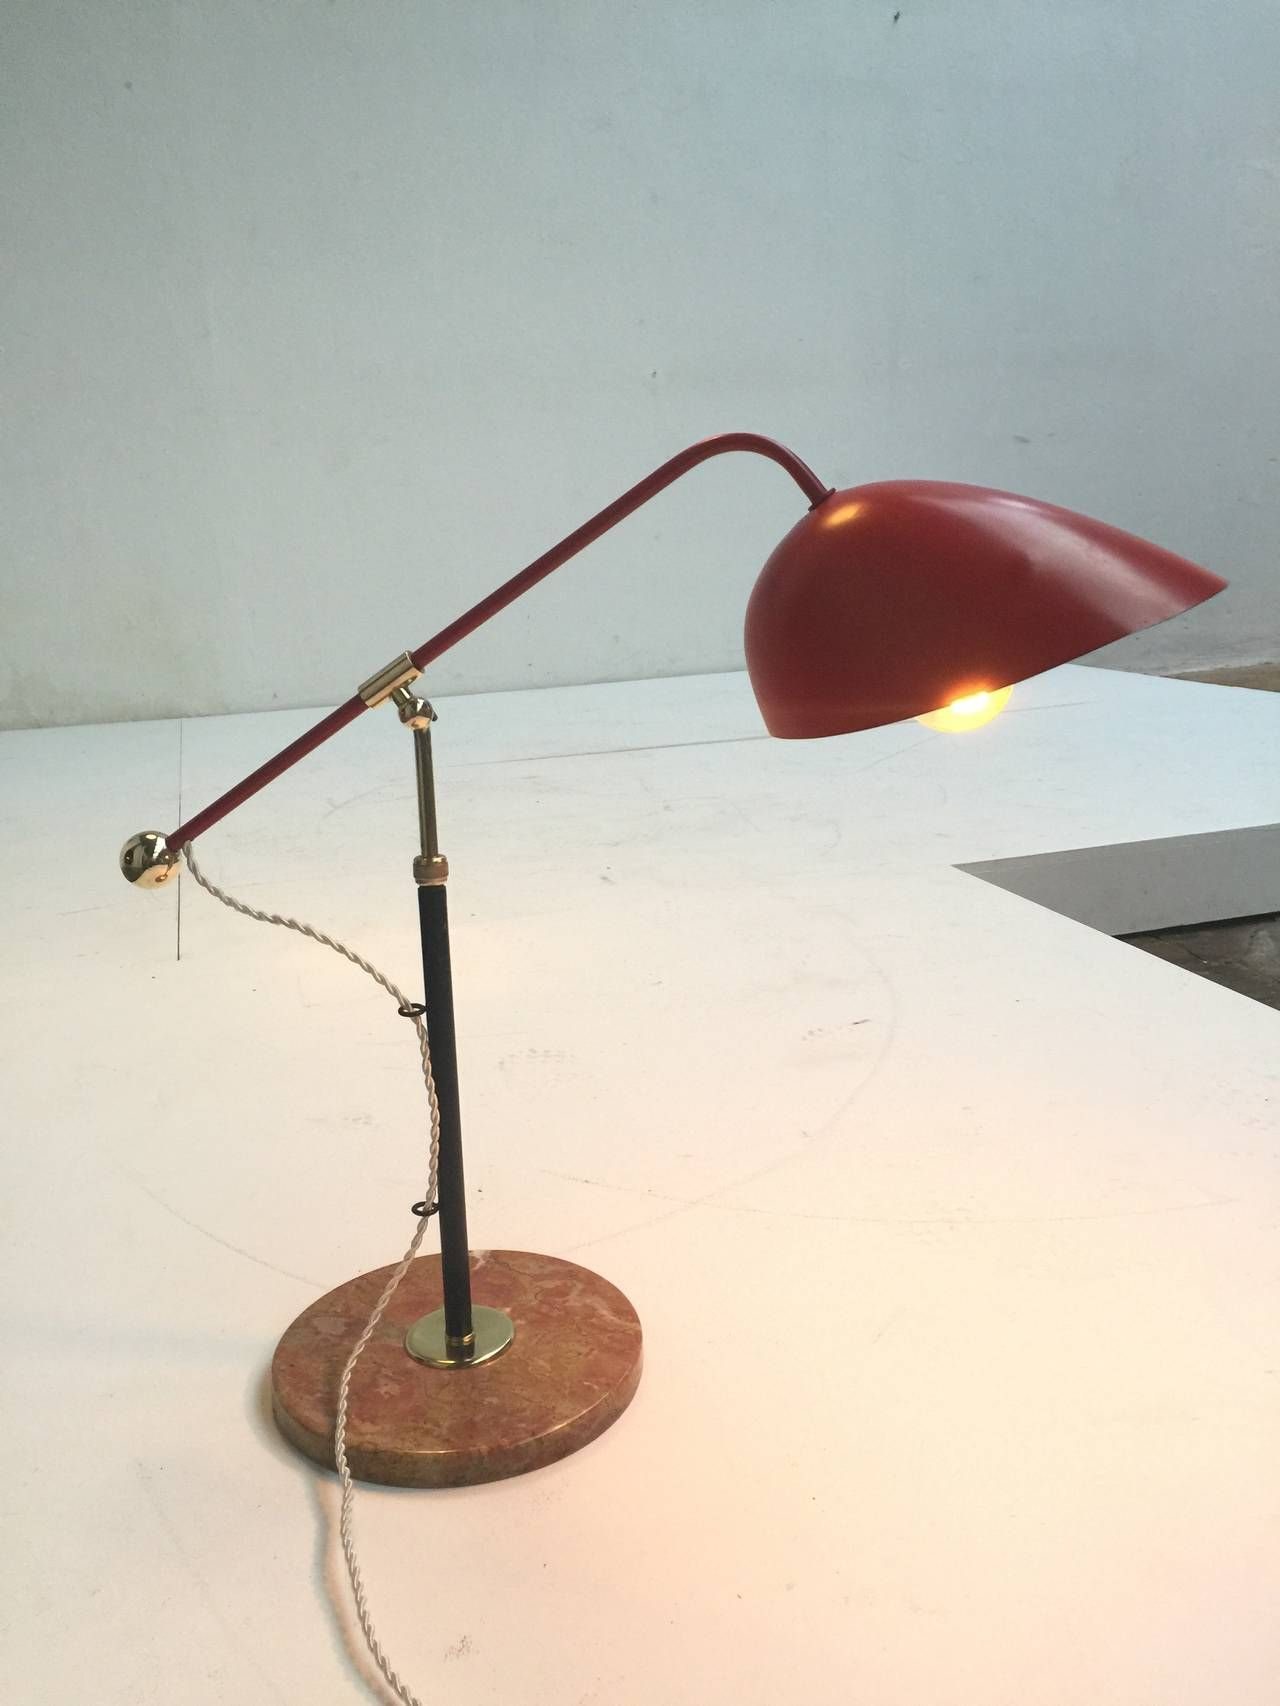 Stunning Counterbalanced Table Lamp By Angelo Lelli For Arredoluce 1954 From A Unique Collection Of Antique And Modern Table Lamps At Https Ww Lamp